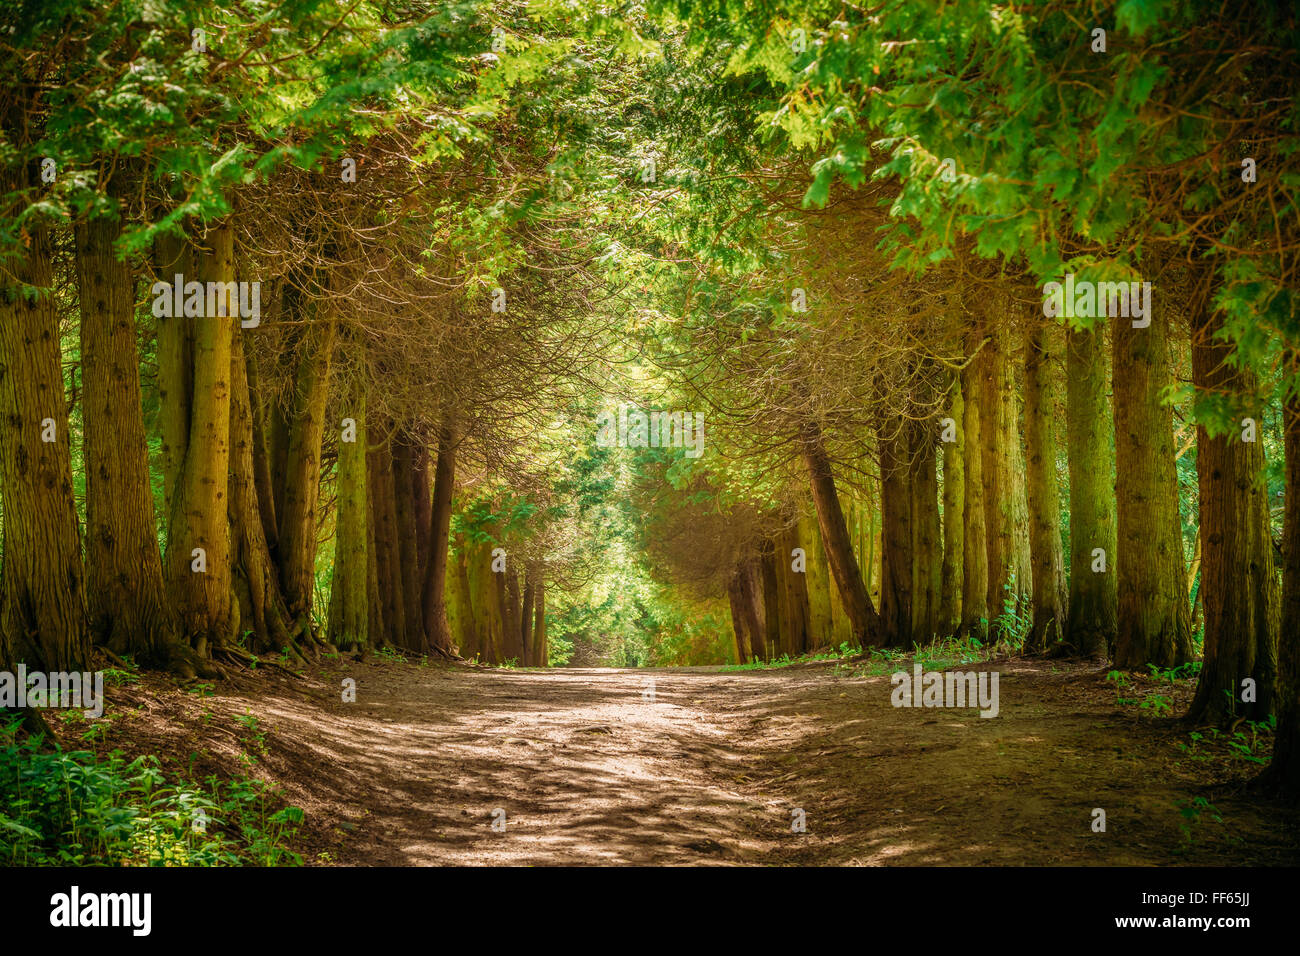 Walkway Lane Path With Green Trees In Forest Beautiful